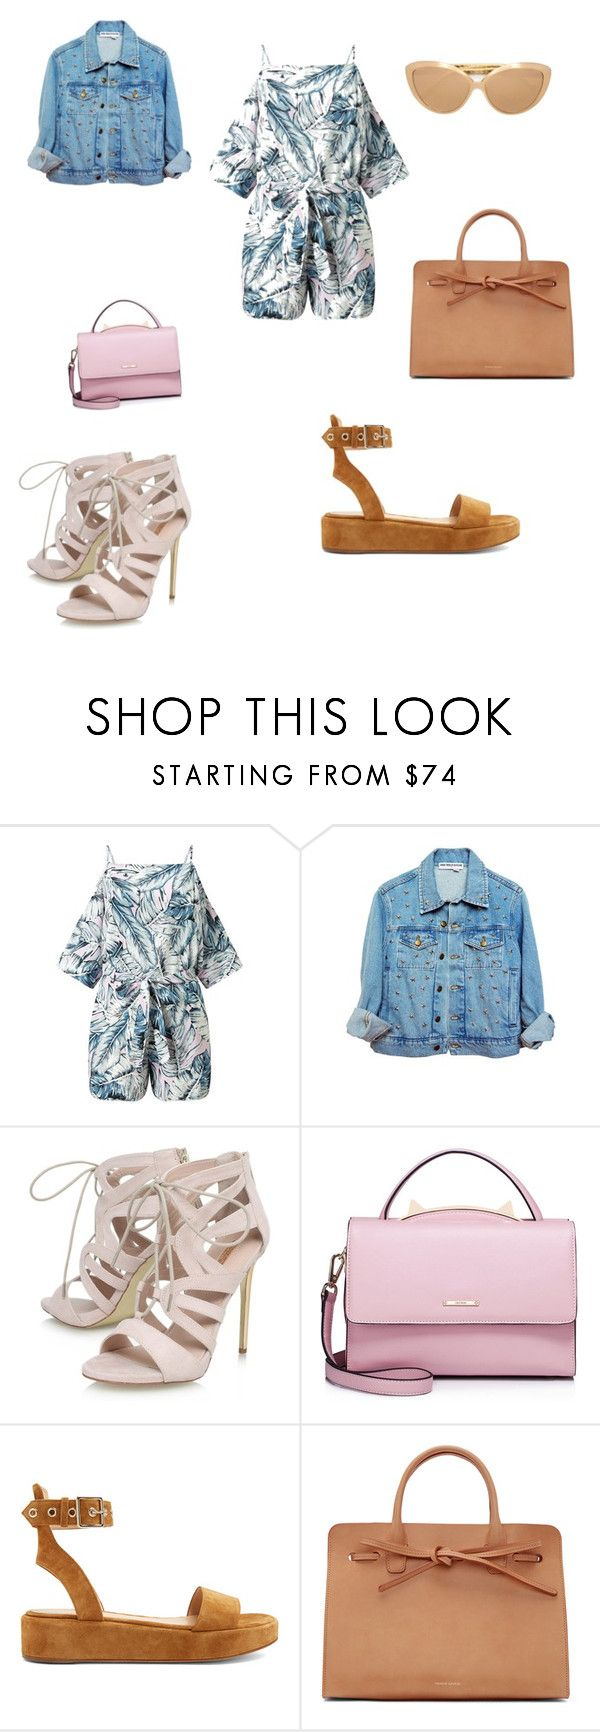 """""""Untitled #1783"""" by mrstreschic ❤ liked on Polyvore featuring Miss Selfridge, High Heels Suicide, Carvela, WithChic, Gianvito Rossi, Mansur Gavriel and Linda Farrow"""